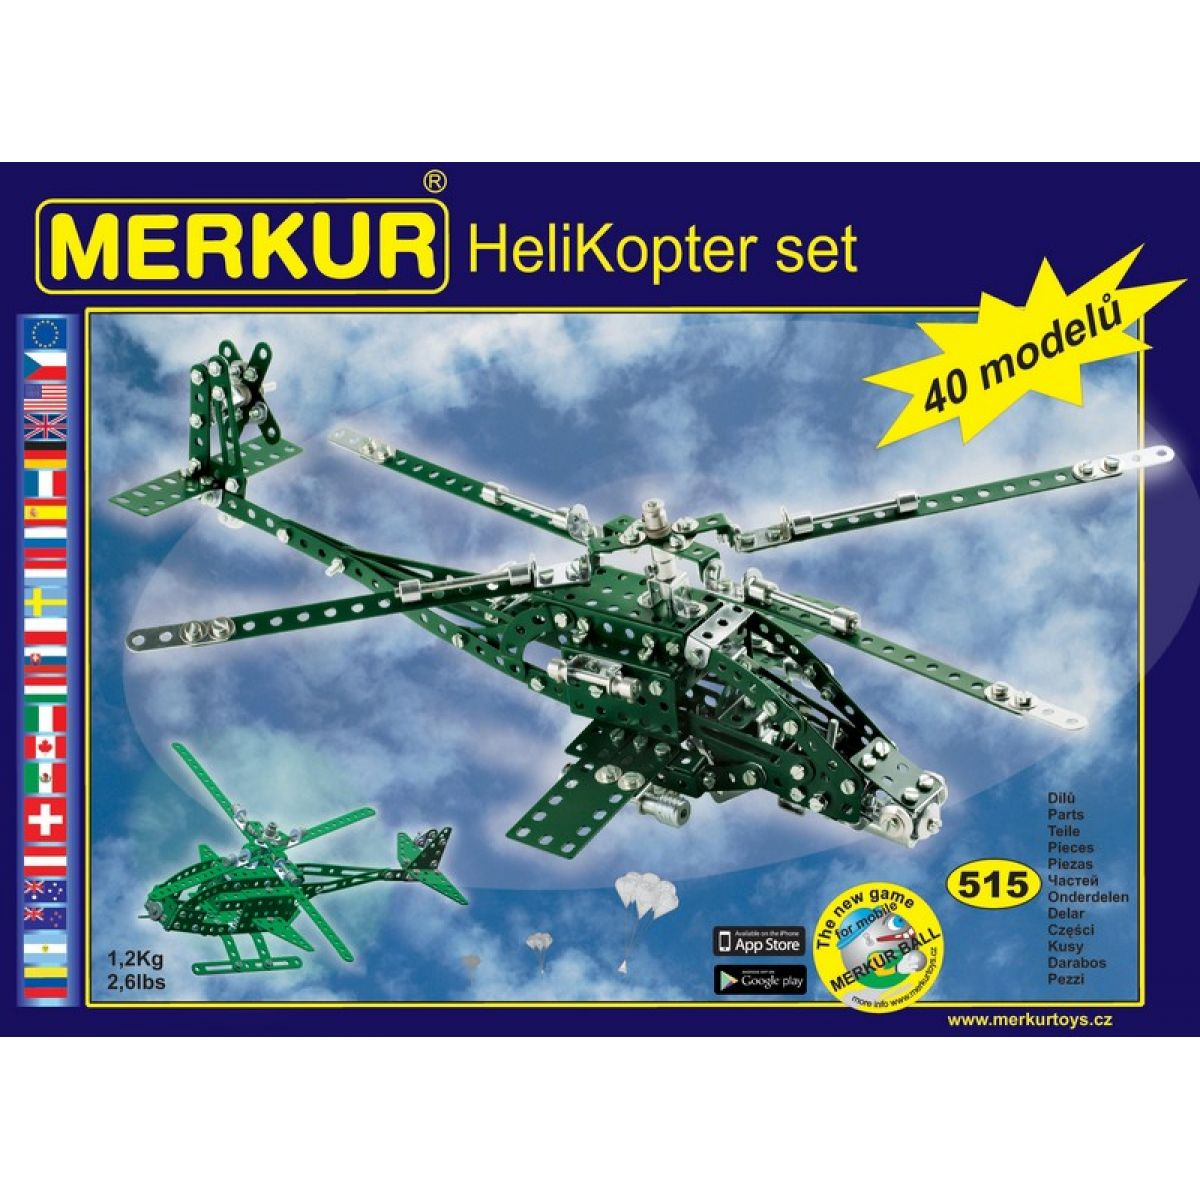 Merkur Helikopter set